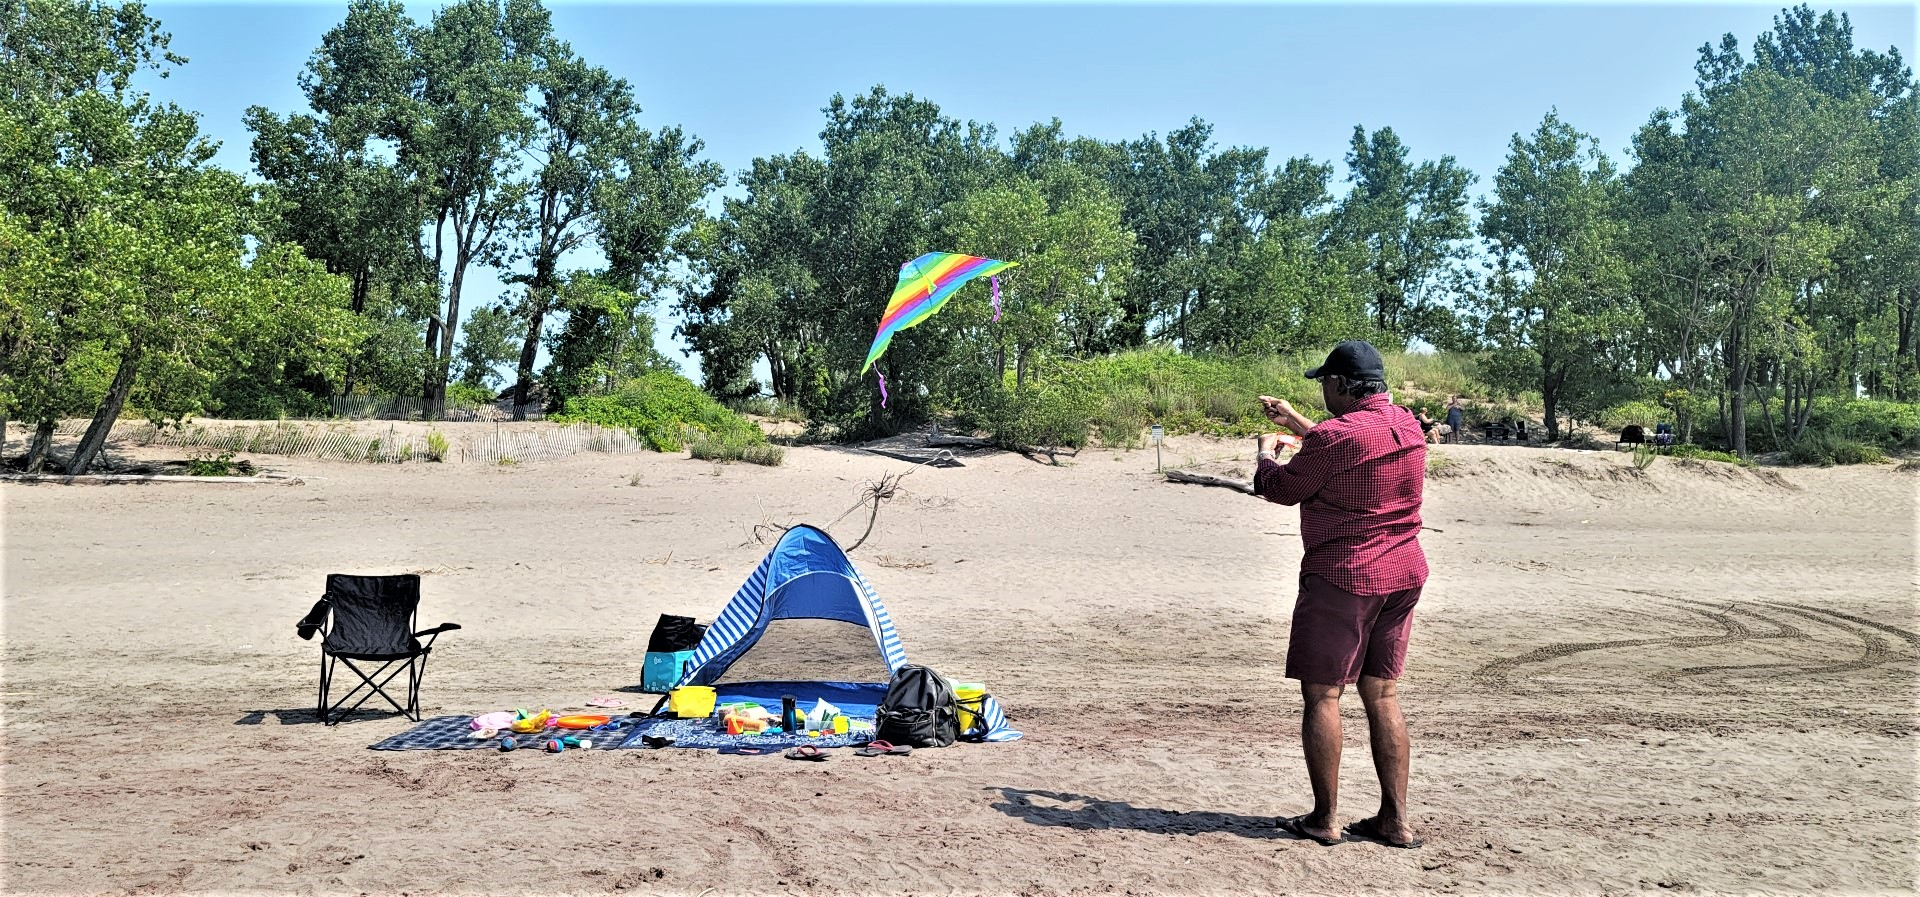 man flying kite at Long Point beach with blue tent and black chair